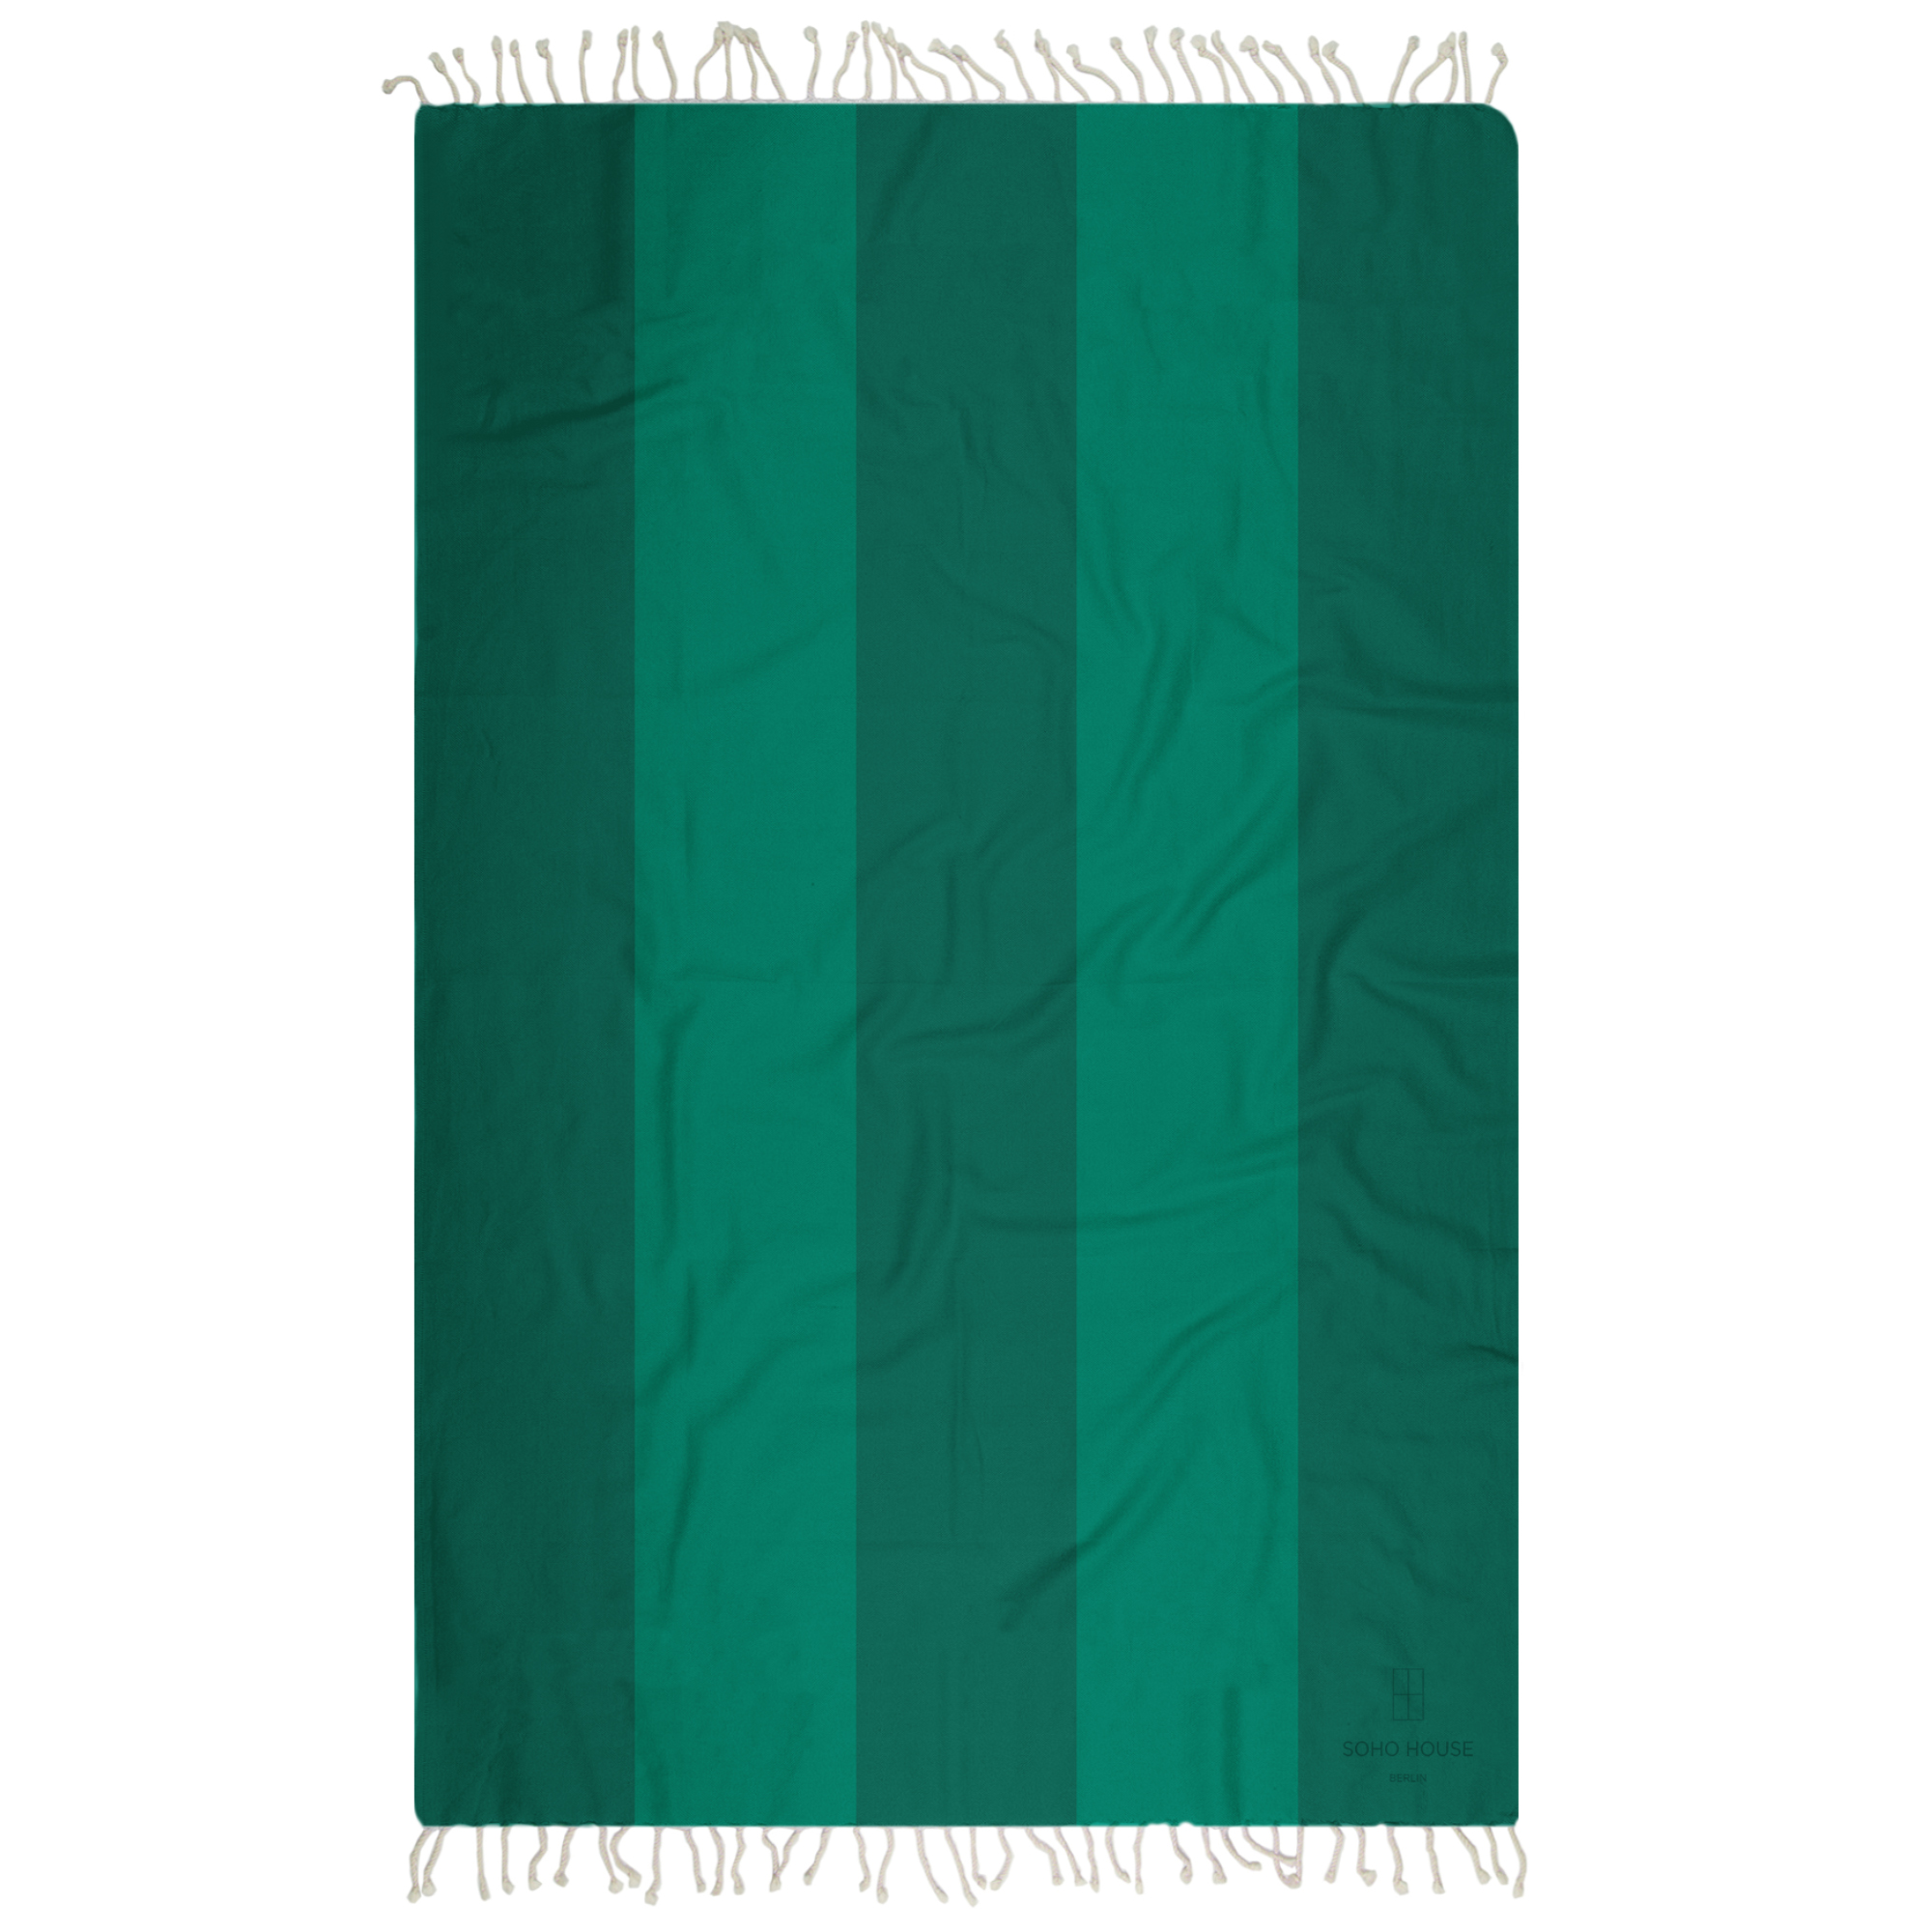 soho-house-berlin-spa-towel-collection-square